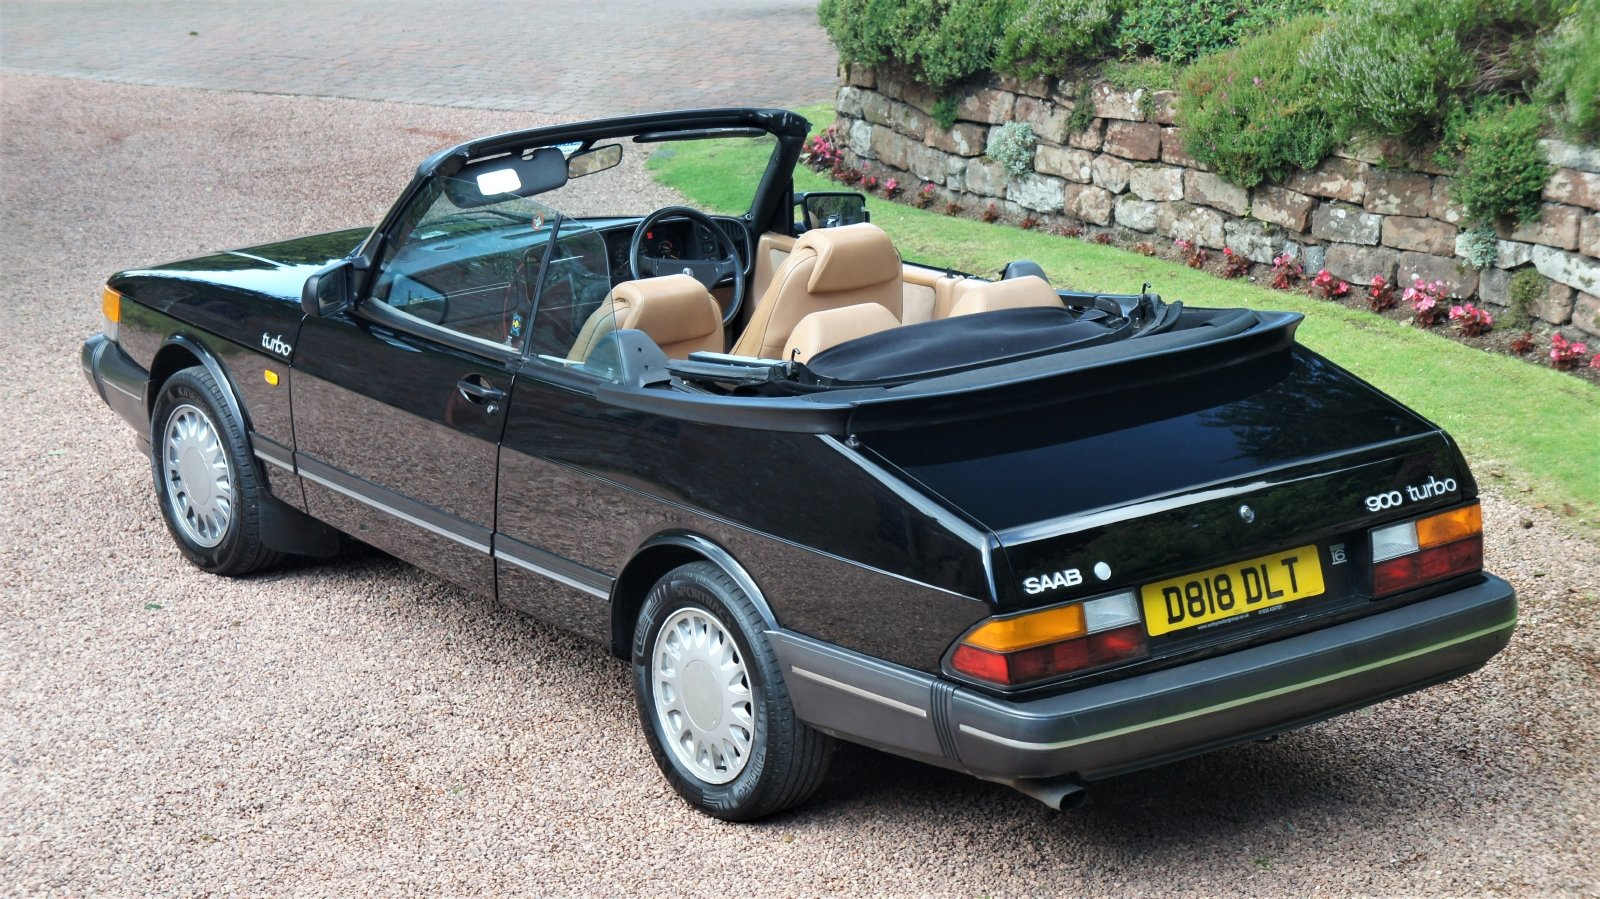 1987 SAAB 900 16 VALVE TURBO CONVERTIBLE - 74000 MILES For Sale (picture 2 of 6)